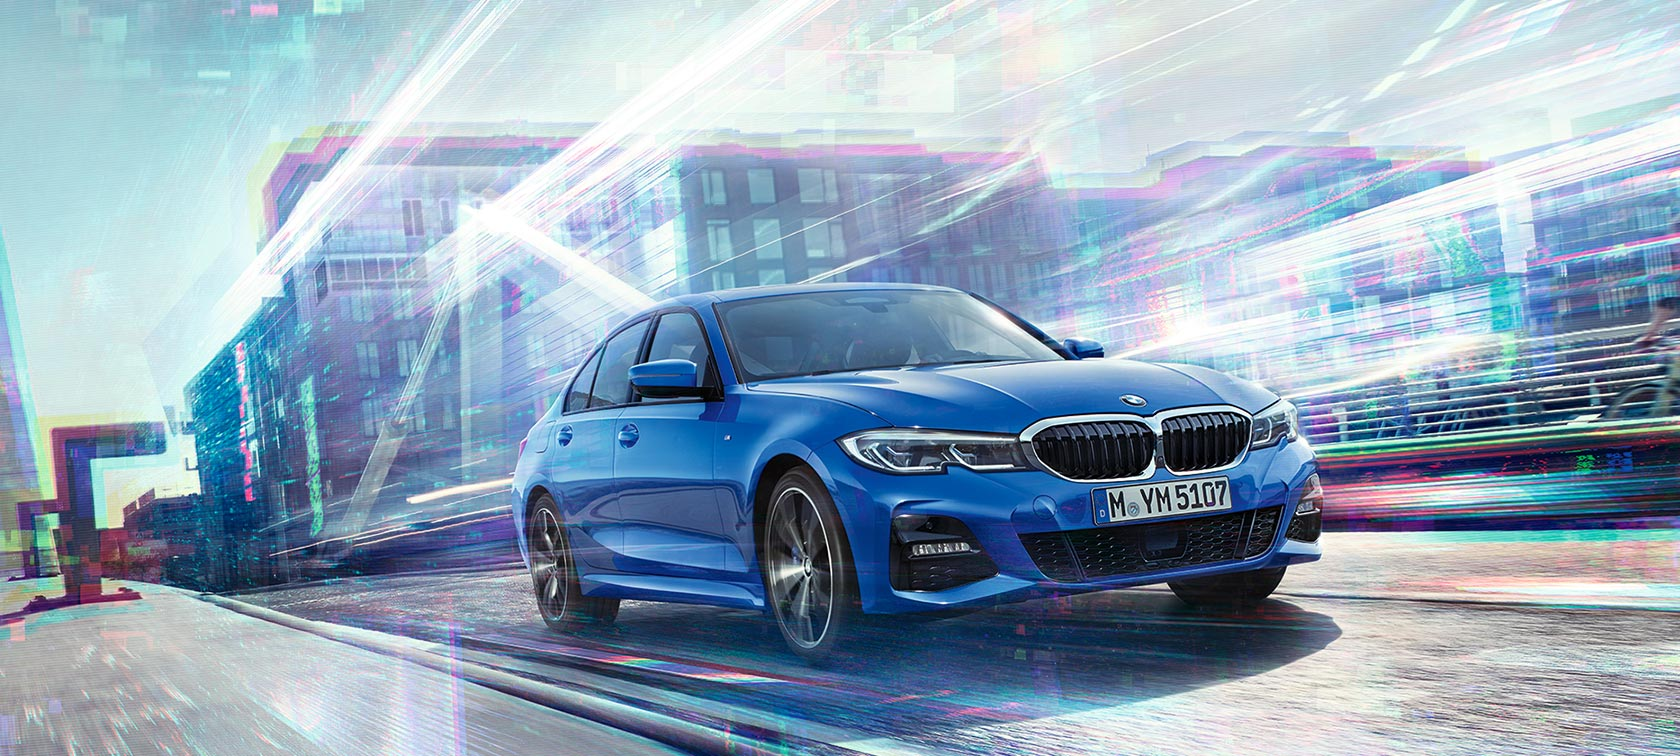 THE ALL-NEW BMW 3 SERIES DEBUT.